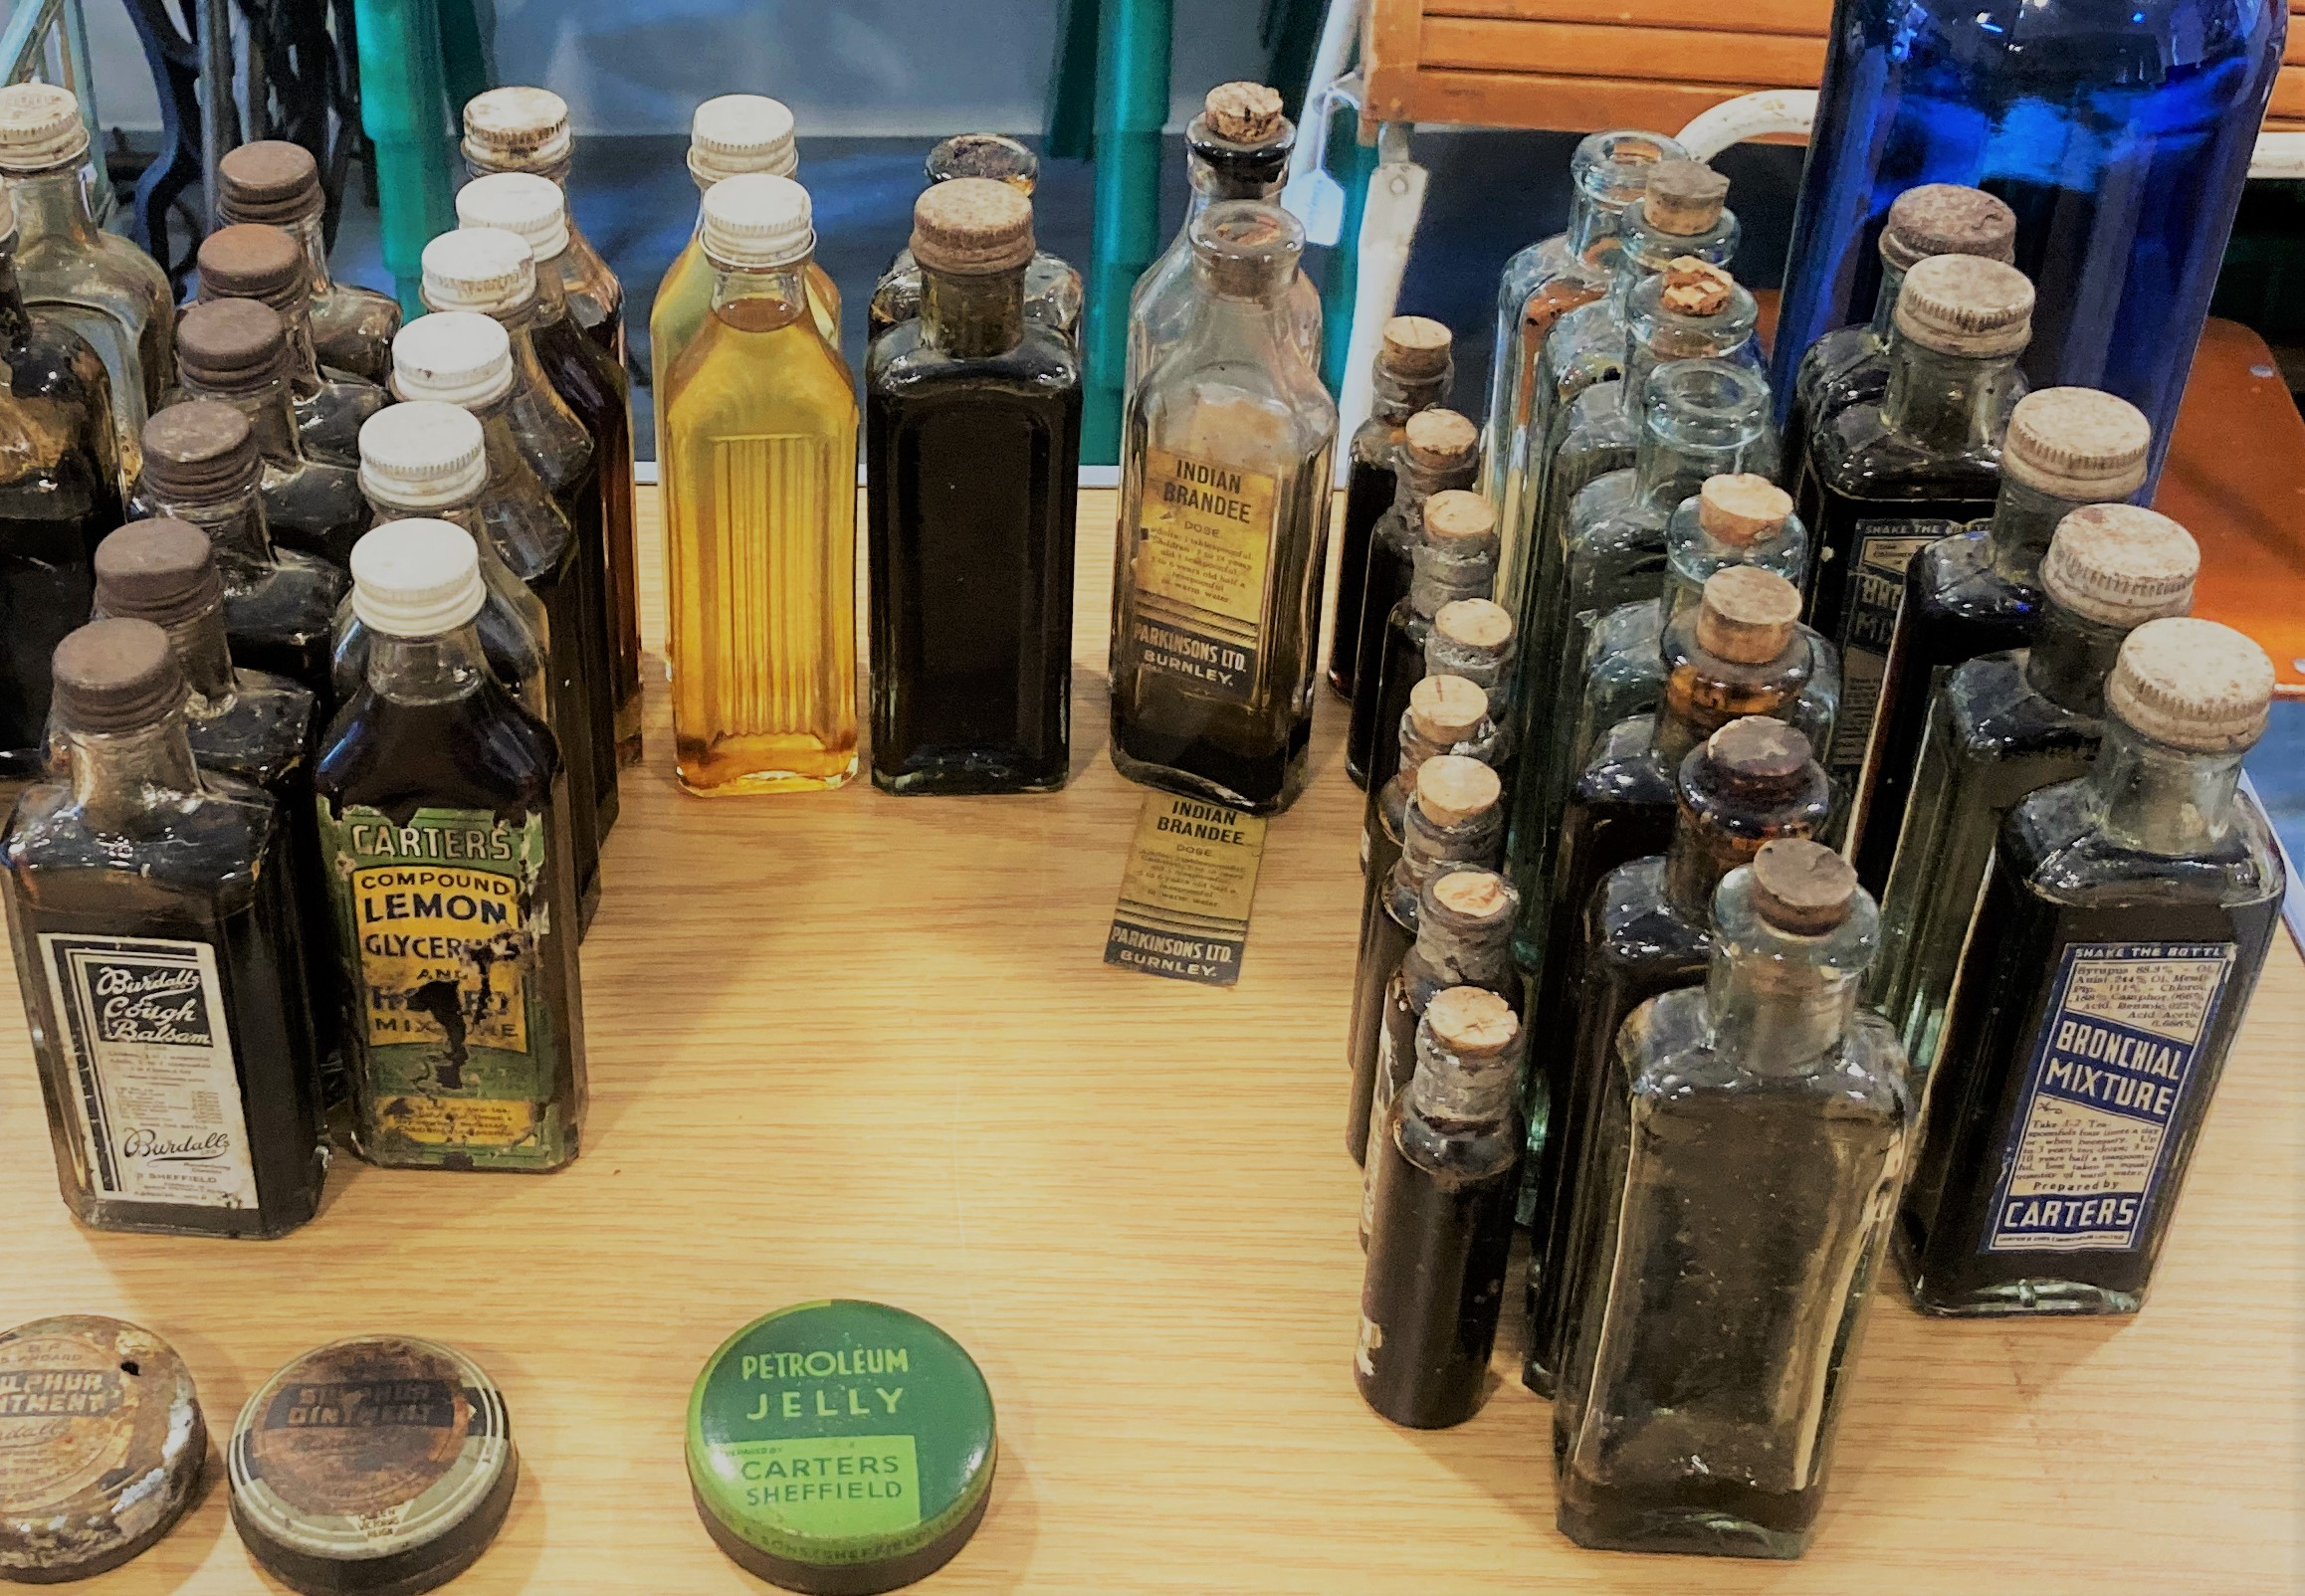 selection of glass medicine bottles filled with liquid